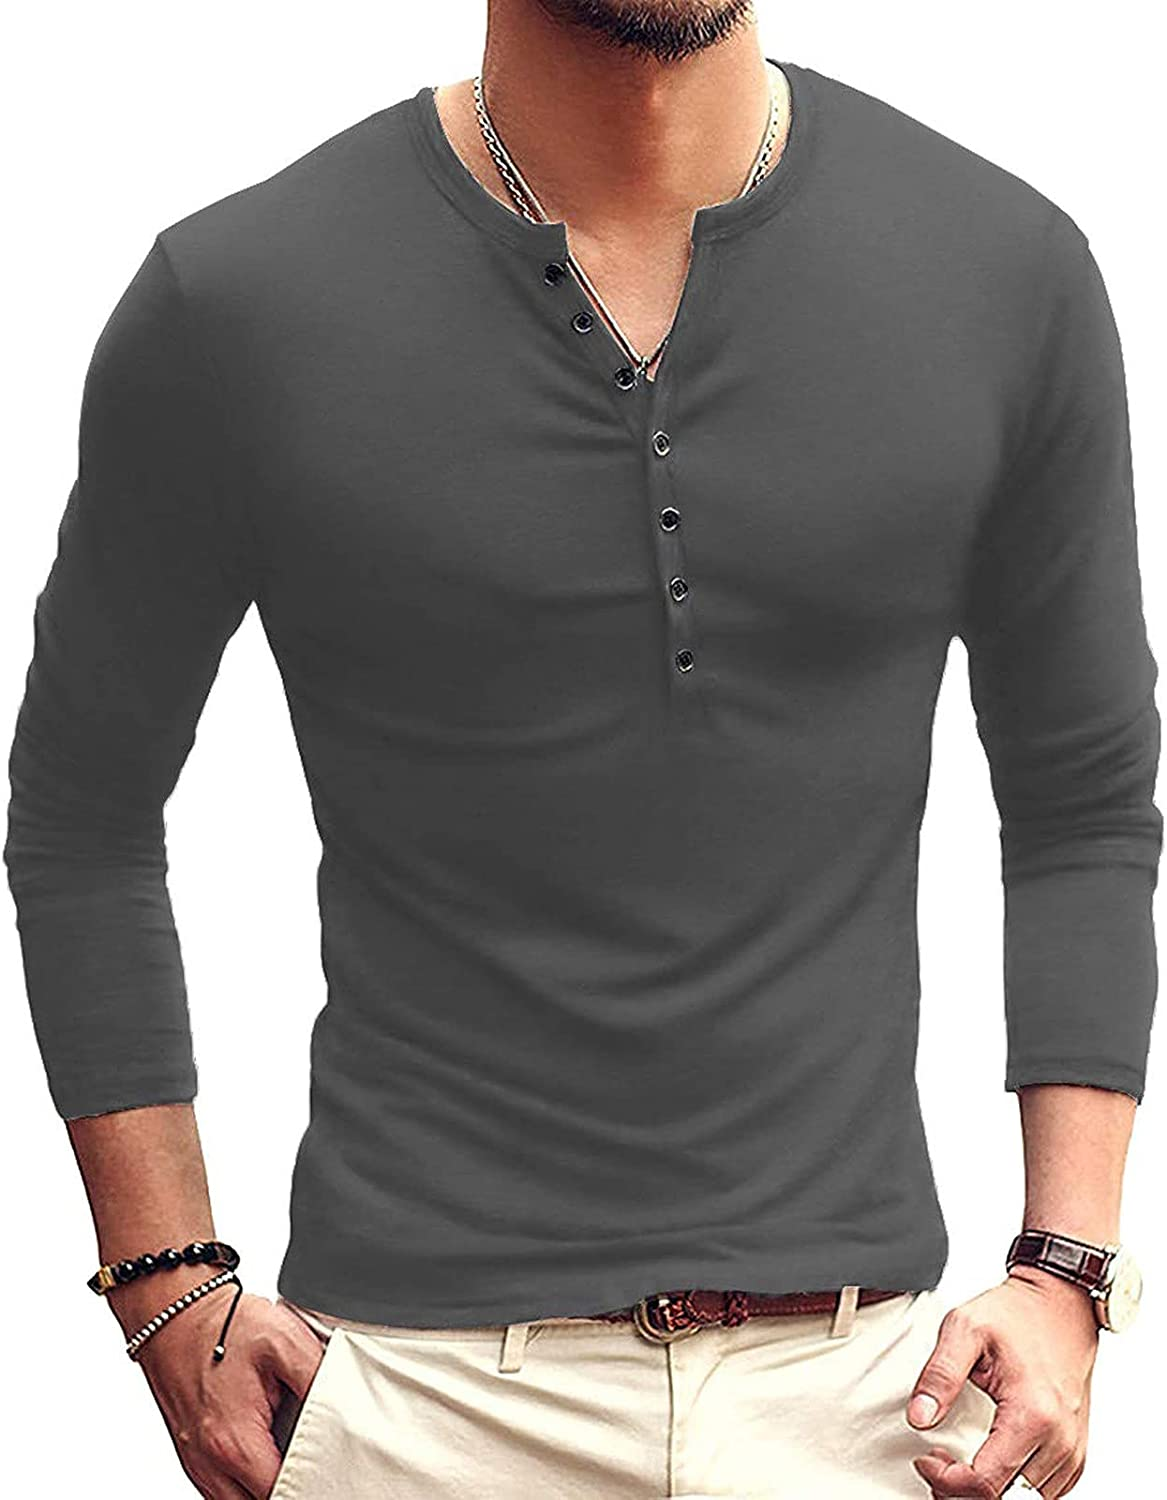 Men's Henley Shirt, V-Neck with Button Placket Plain T-Shirts Casual Shirt Long Sleeves Autumn Casual Regular Fit Tops